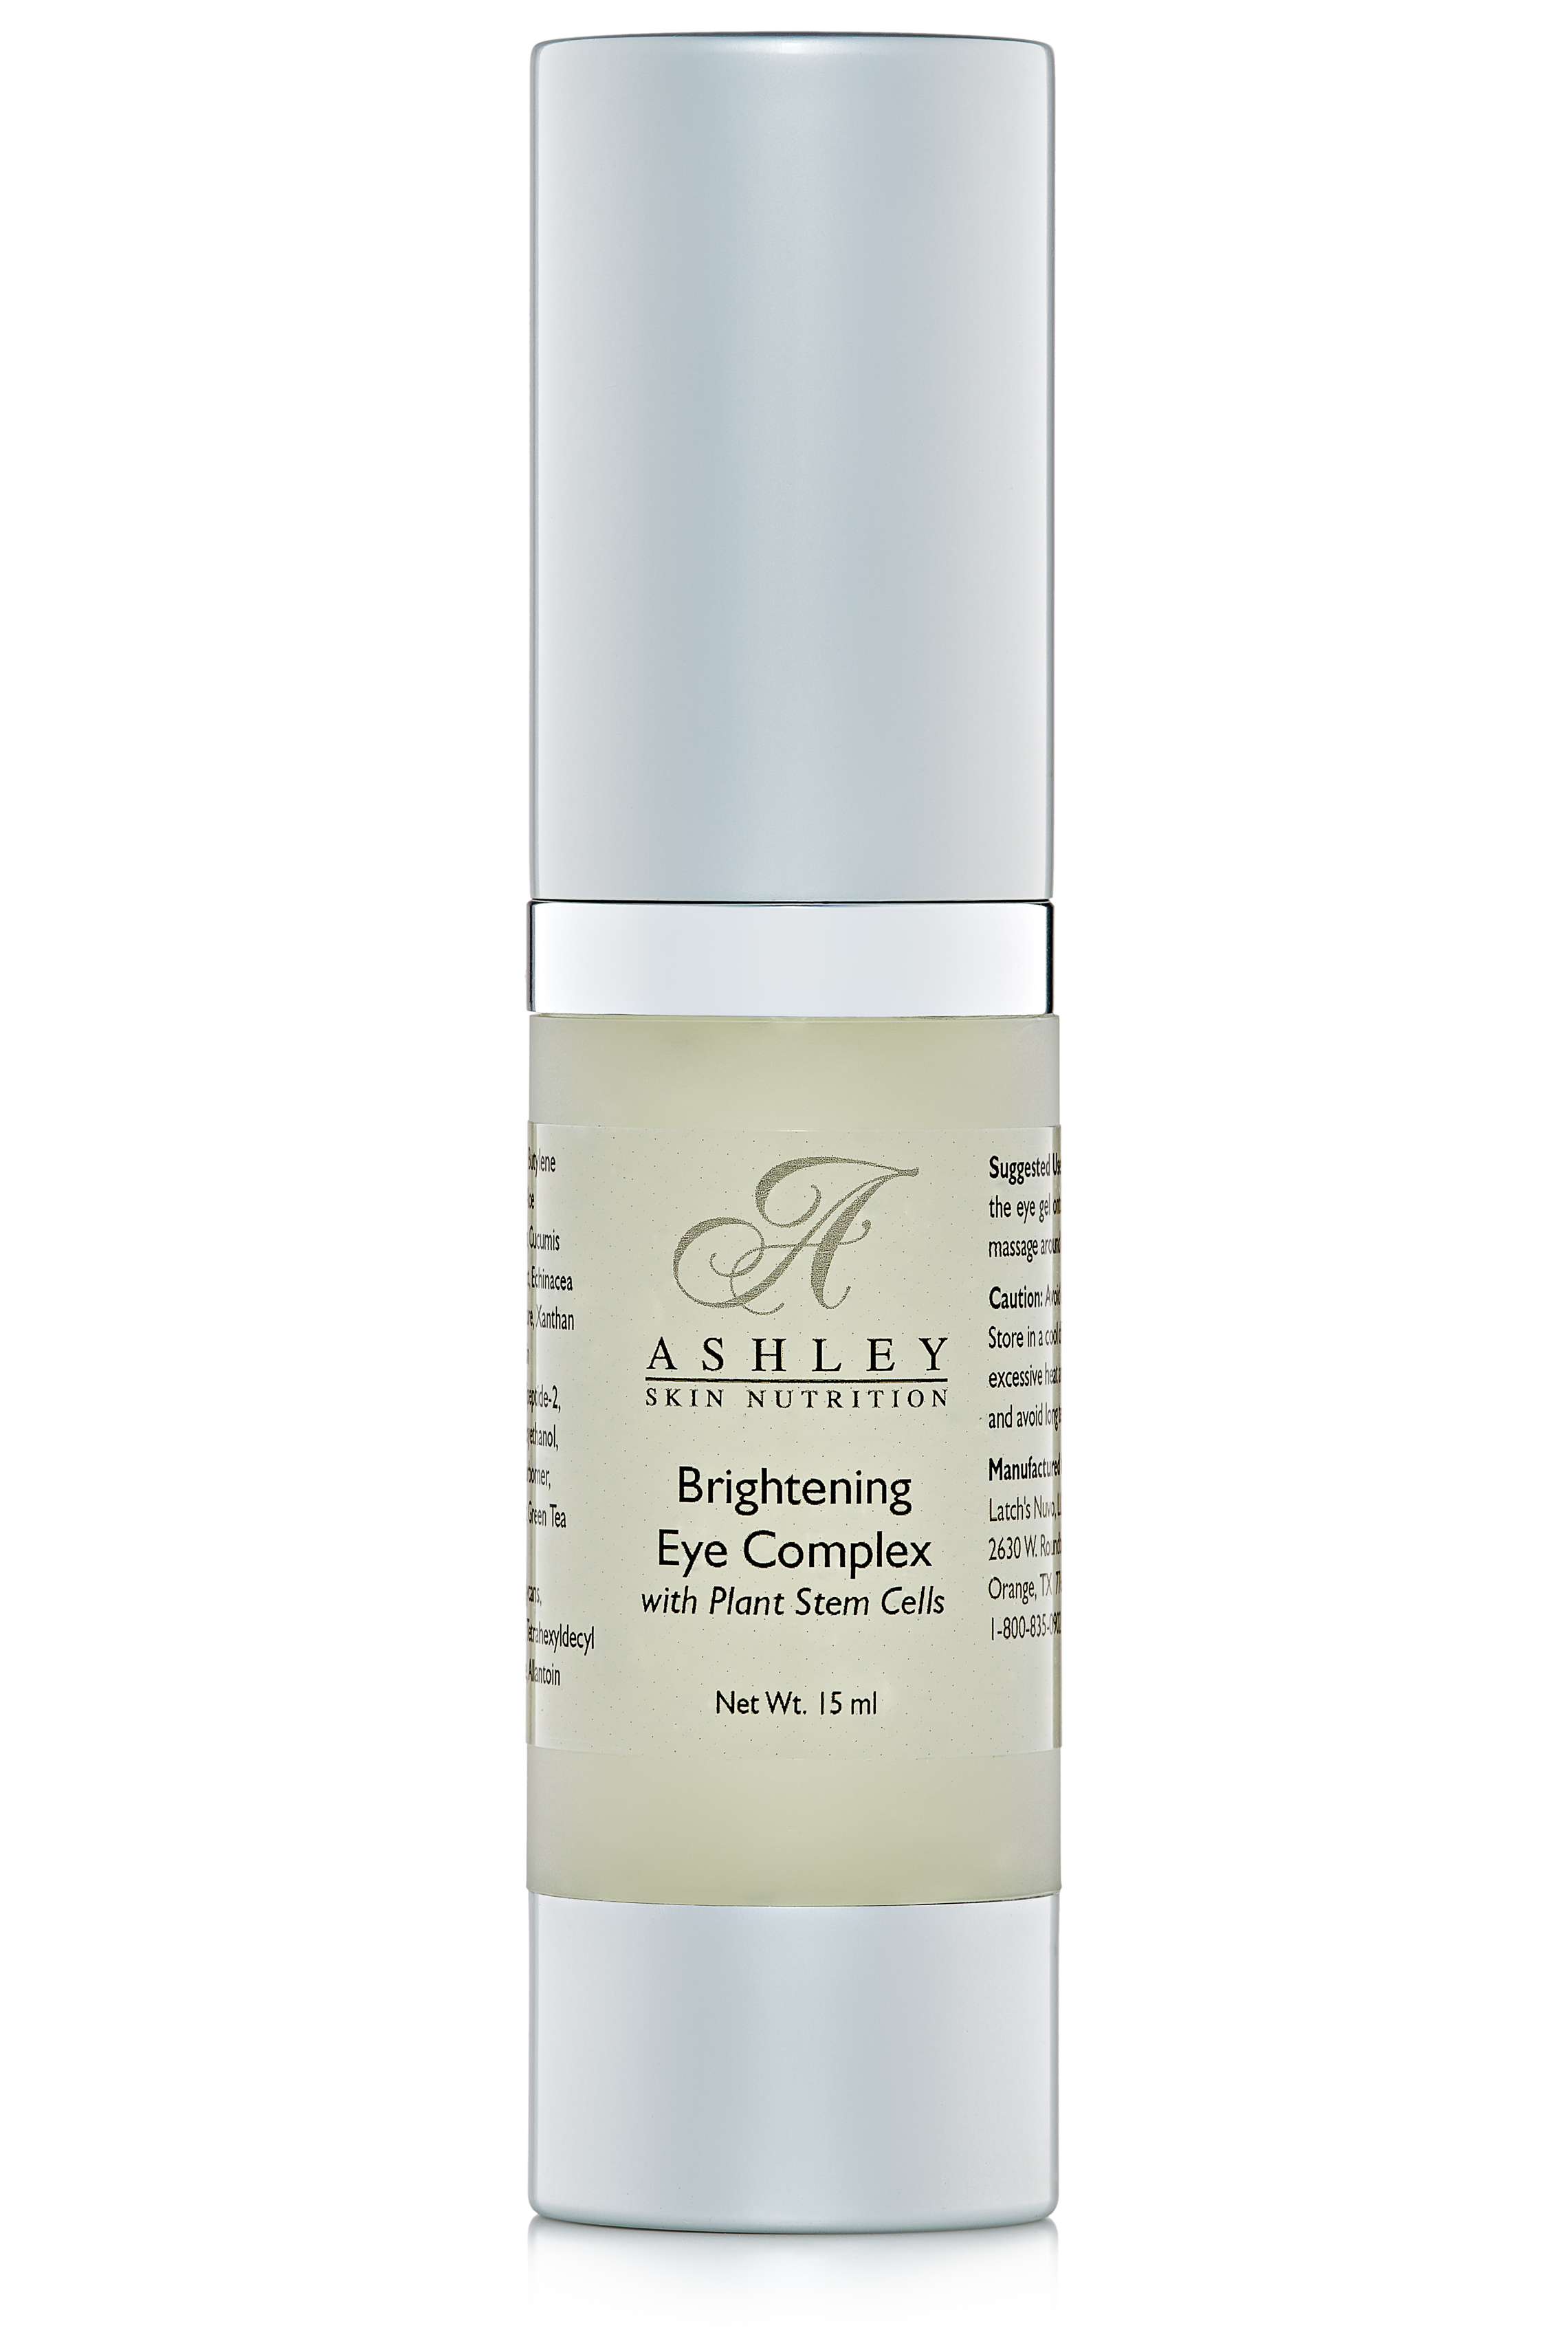 NEW Ashley Skin Nutrition Brightening Eye Complex with Plant Stem Cells